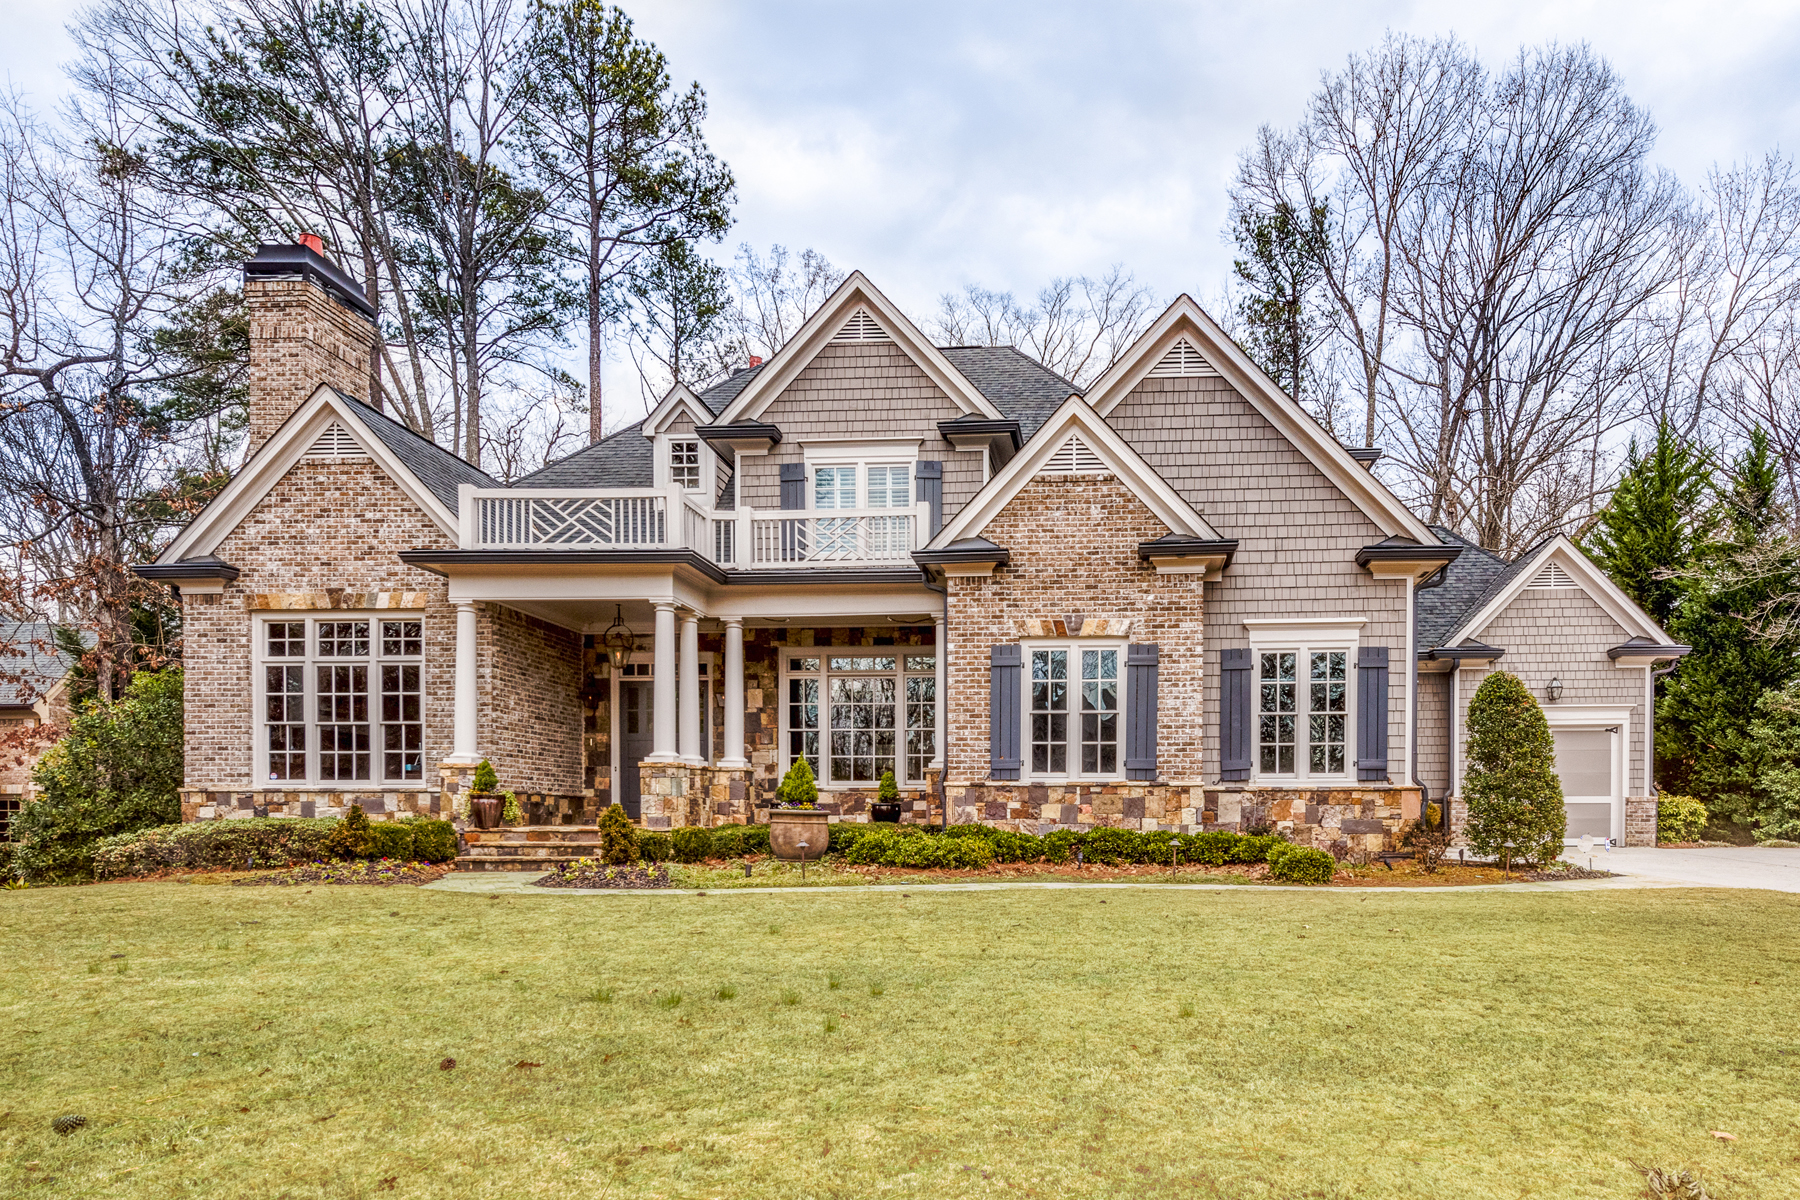 Casa Unifamiliar por un Venta en Custom Built Traditional 635 Colebrook Court Atlanta, Georgia, 30327 Estados Unidos